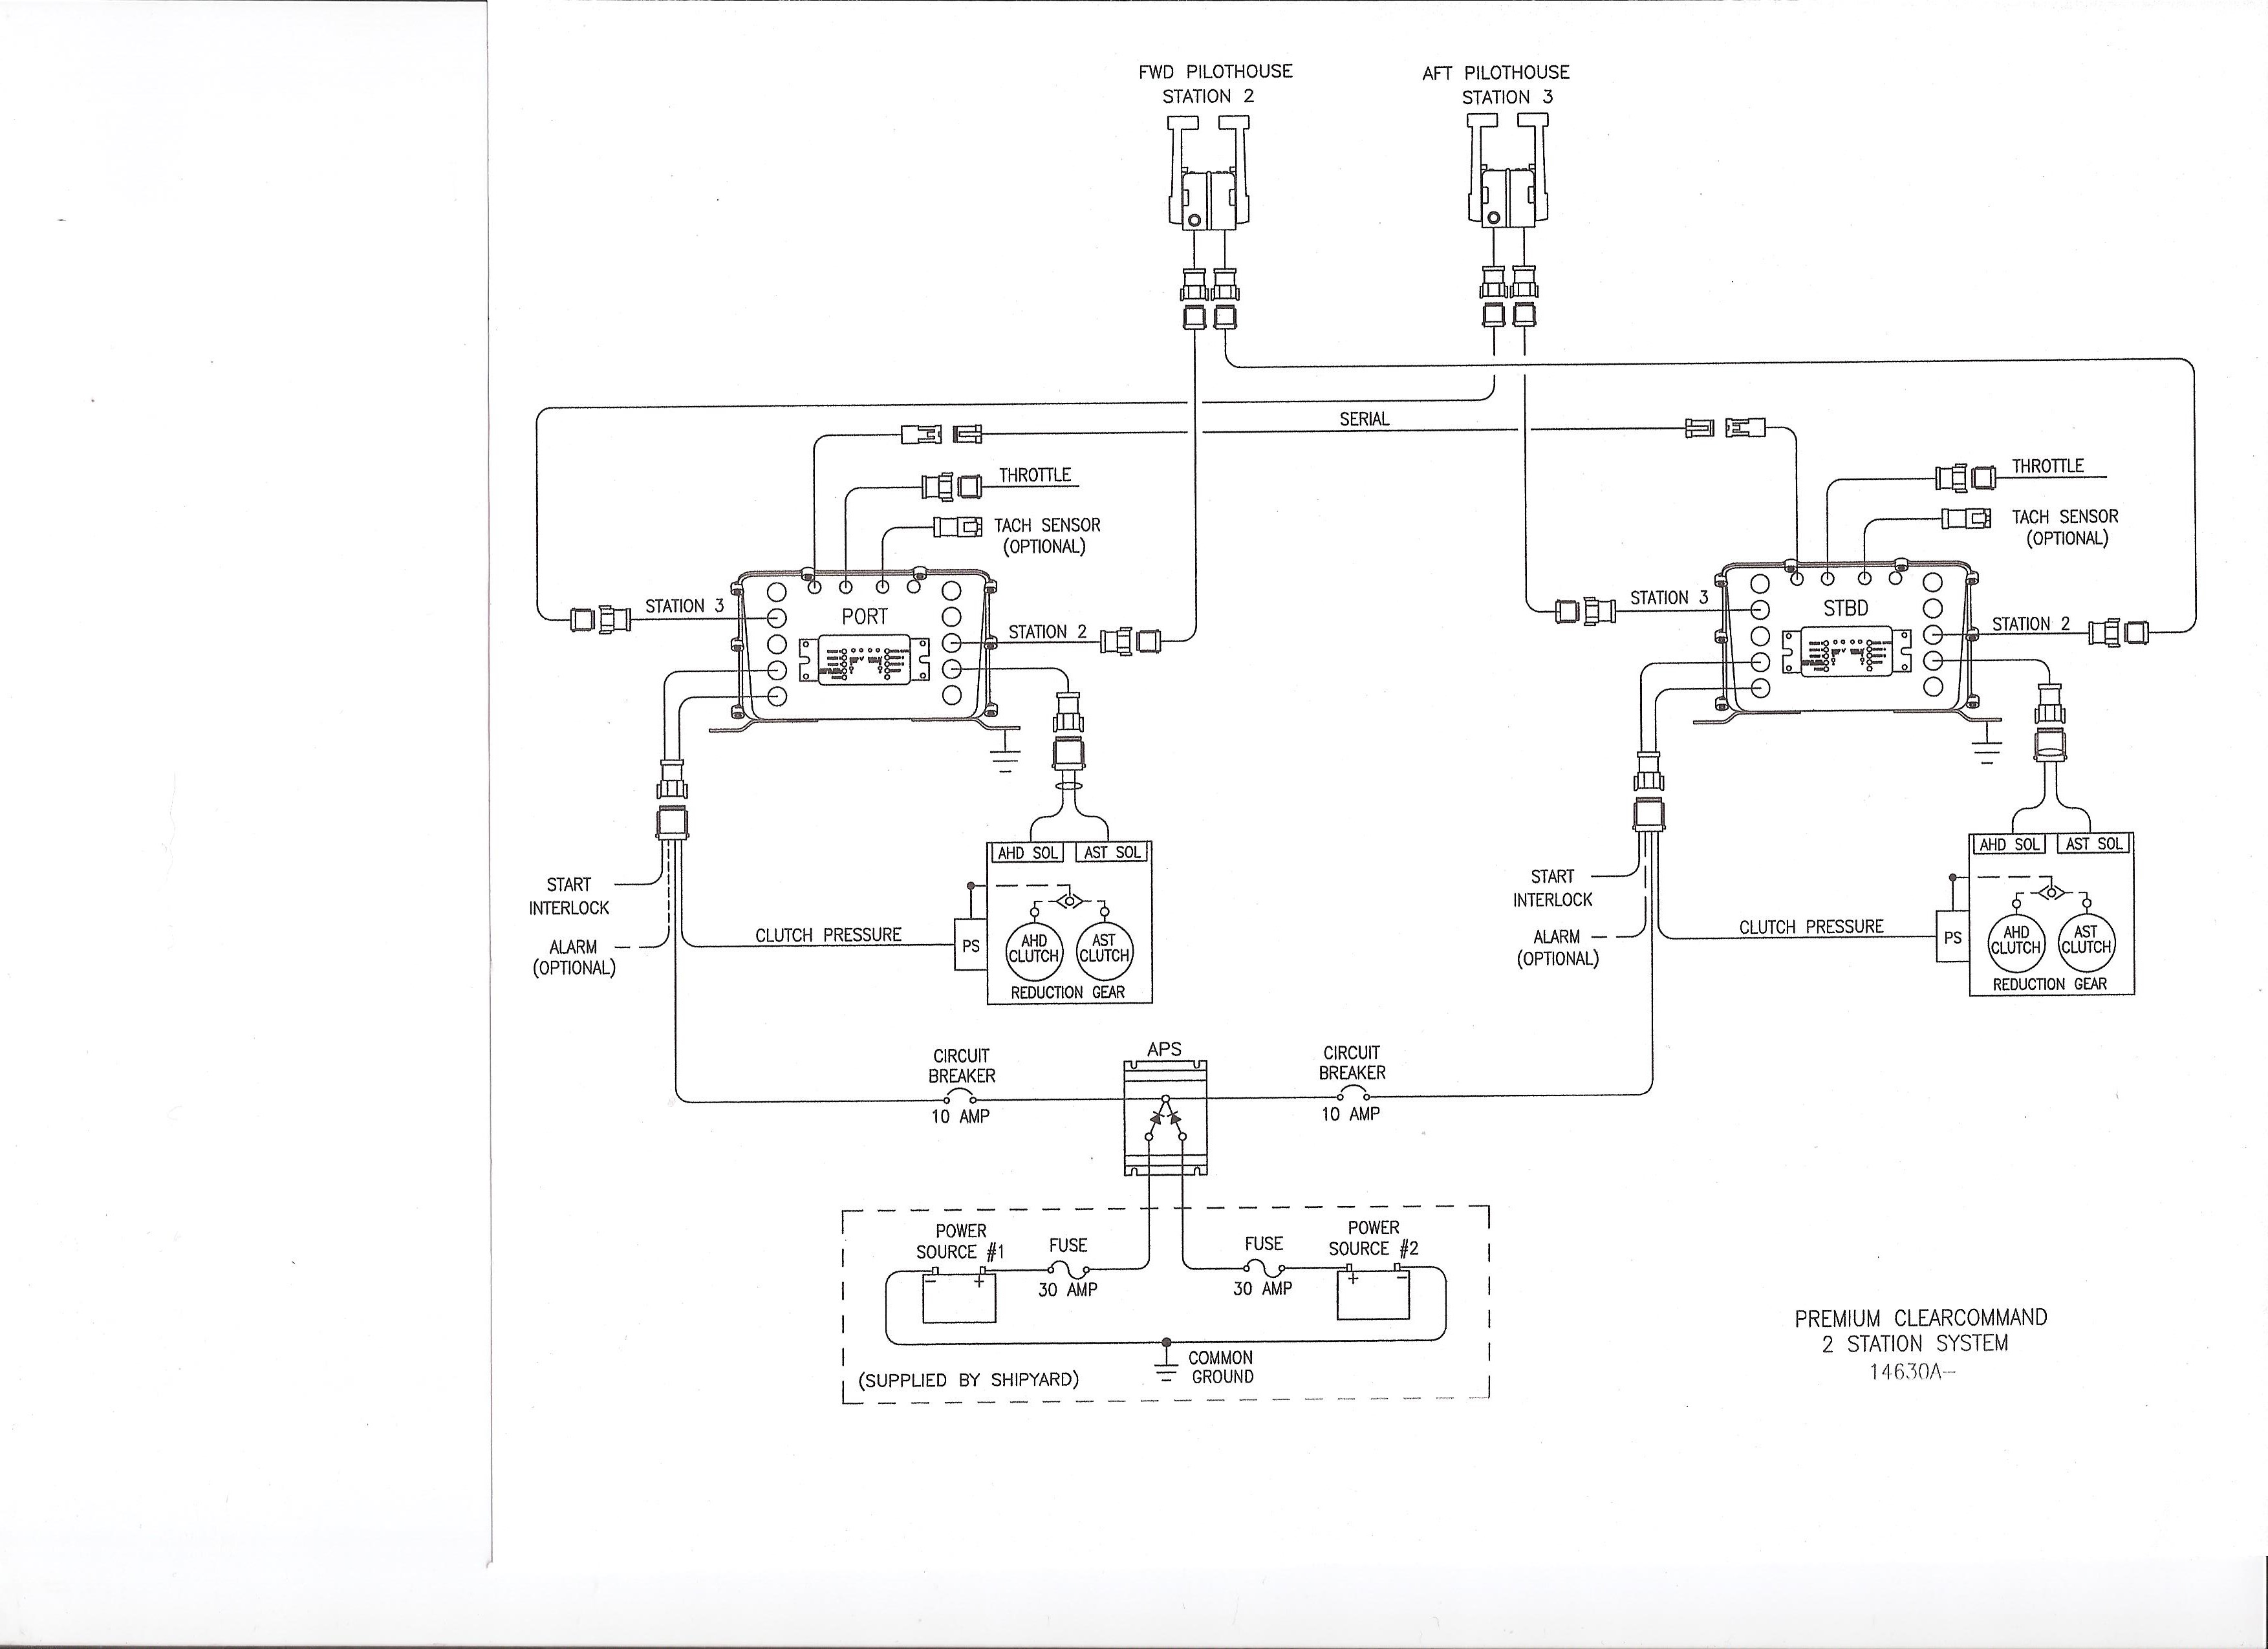 pontoon boat electrical wiring diagrams zf mathers 9000 series microcommander and clearcommand  zf mathers 9000 series microcommander and clearcommand